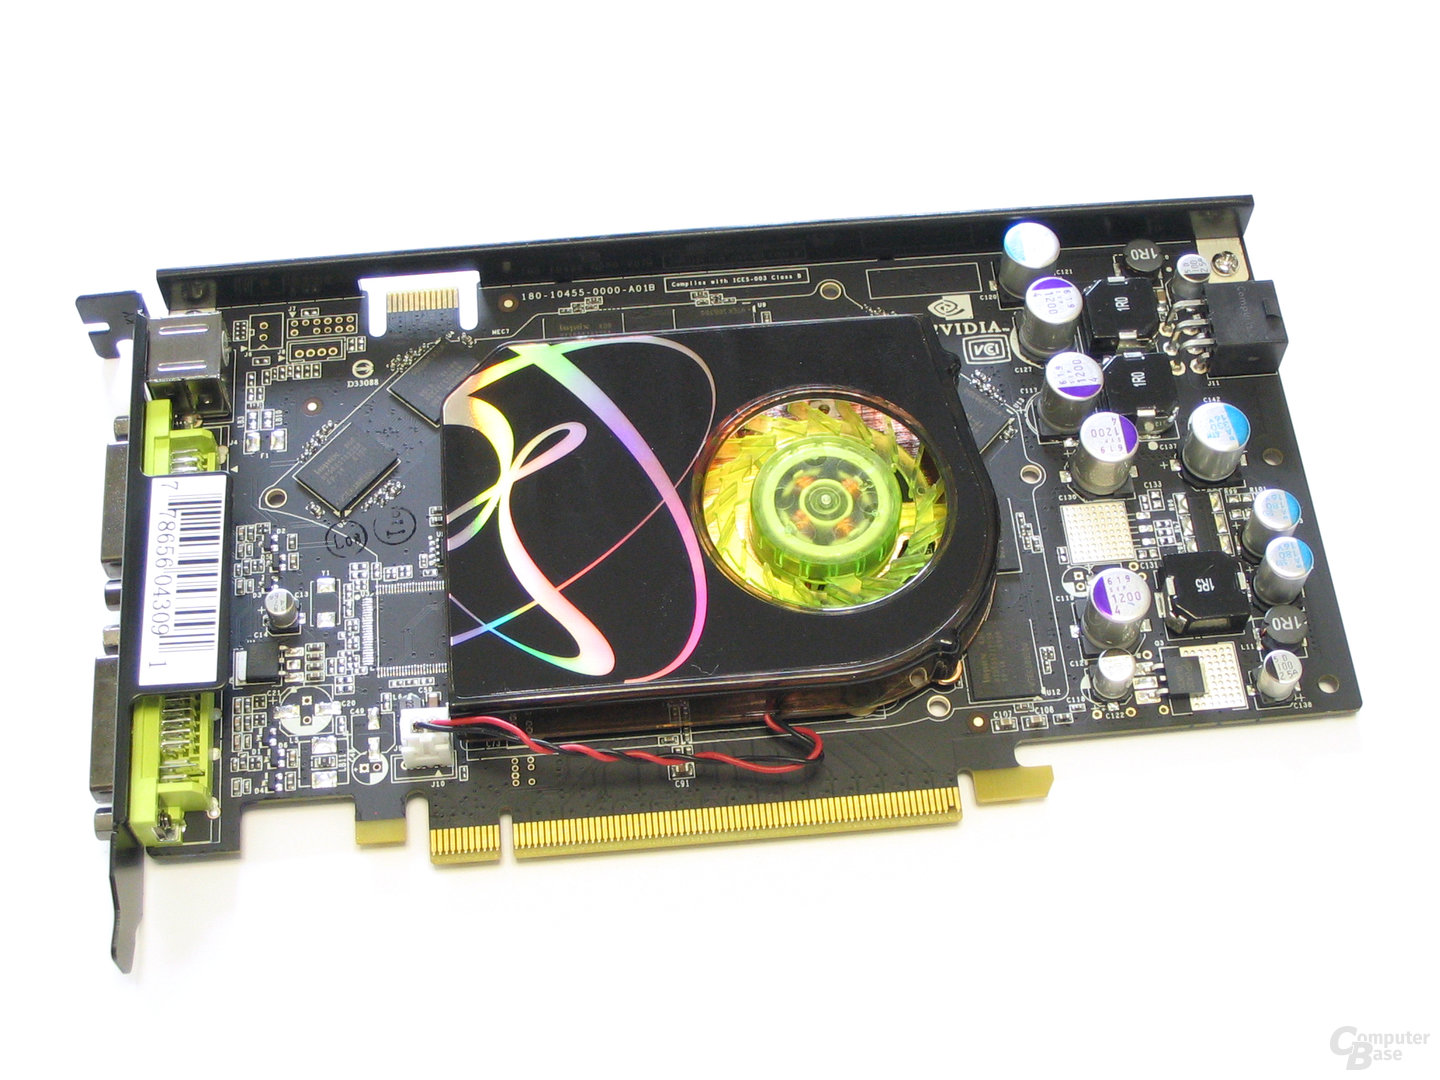 XFX GeForce 7900 GS 480M Extreme